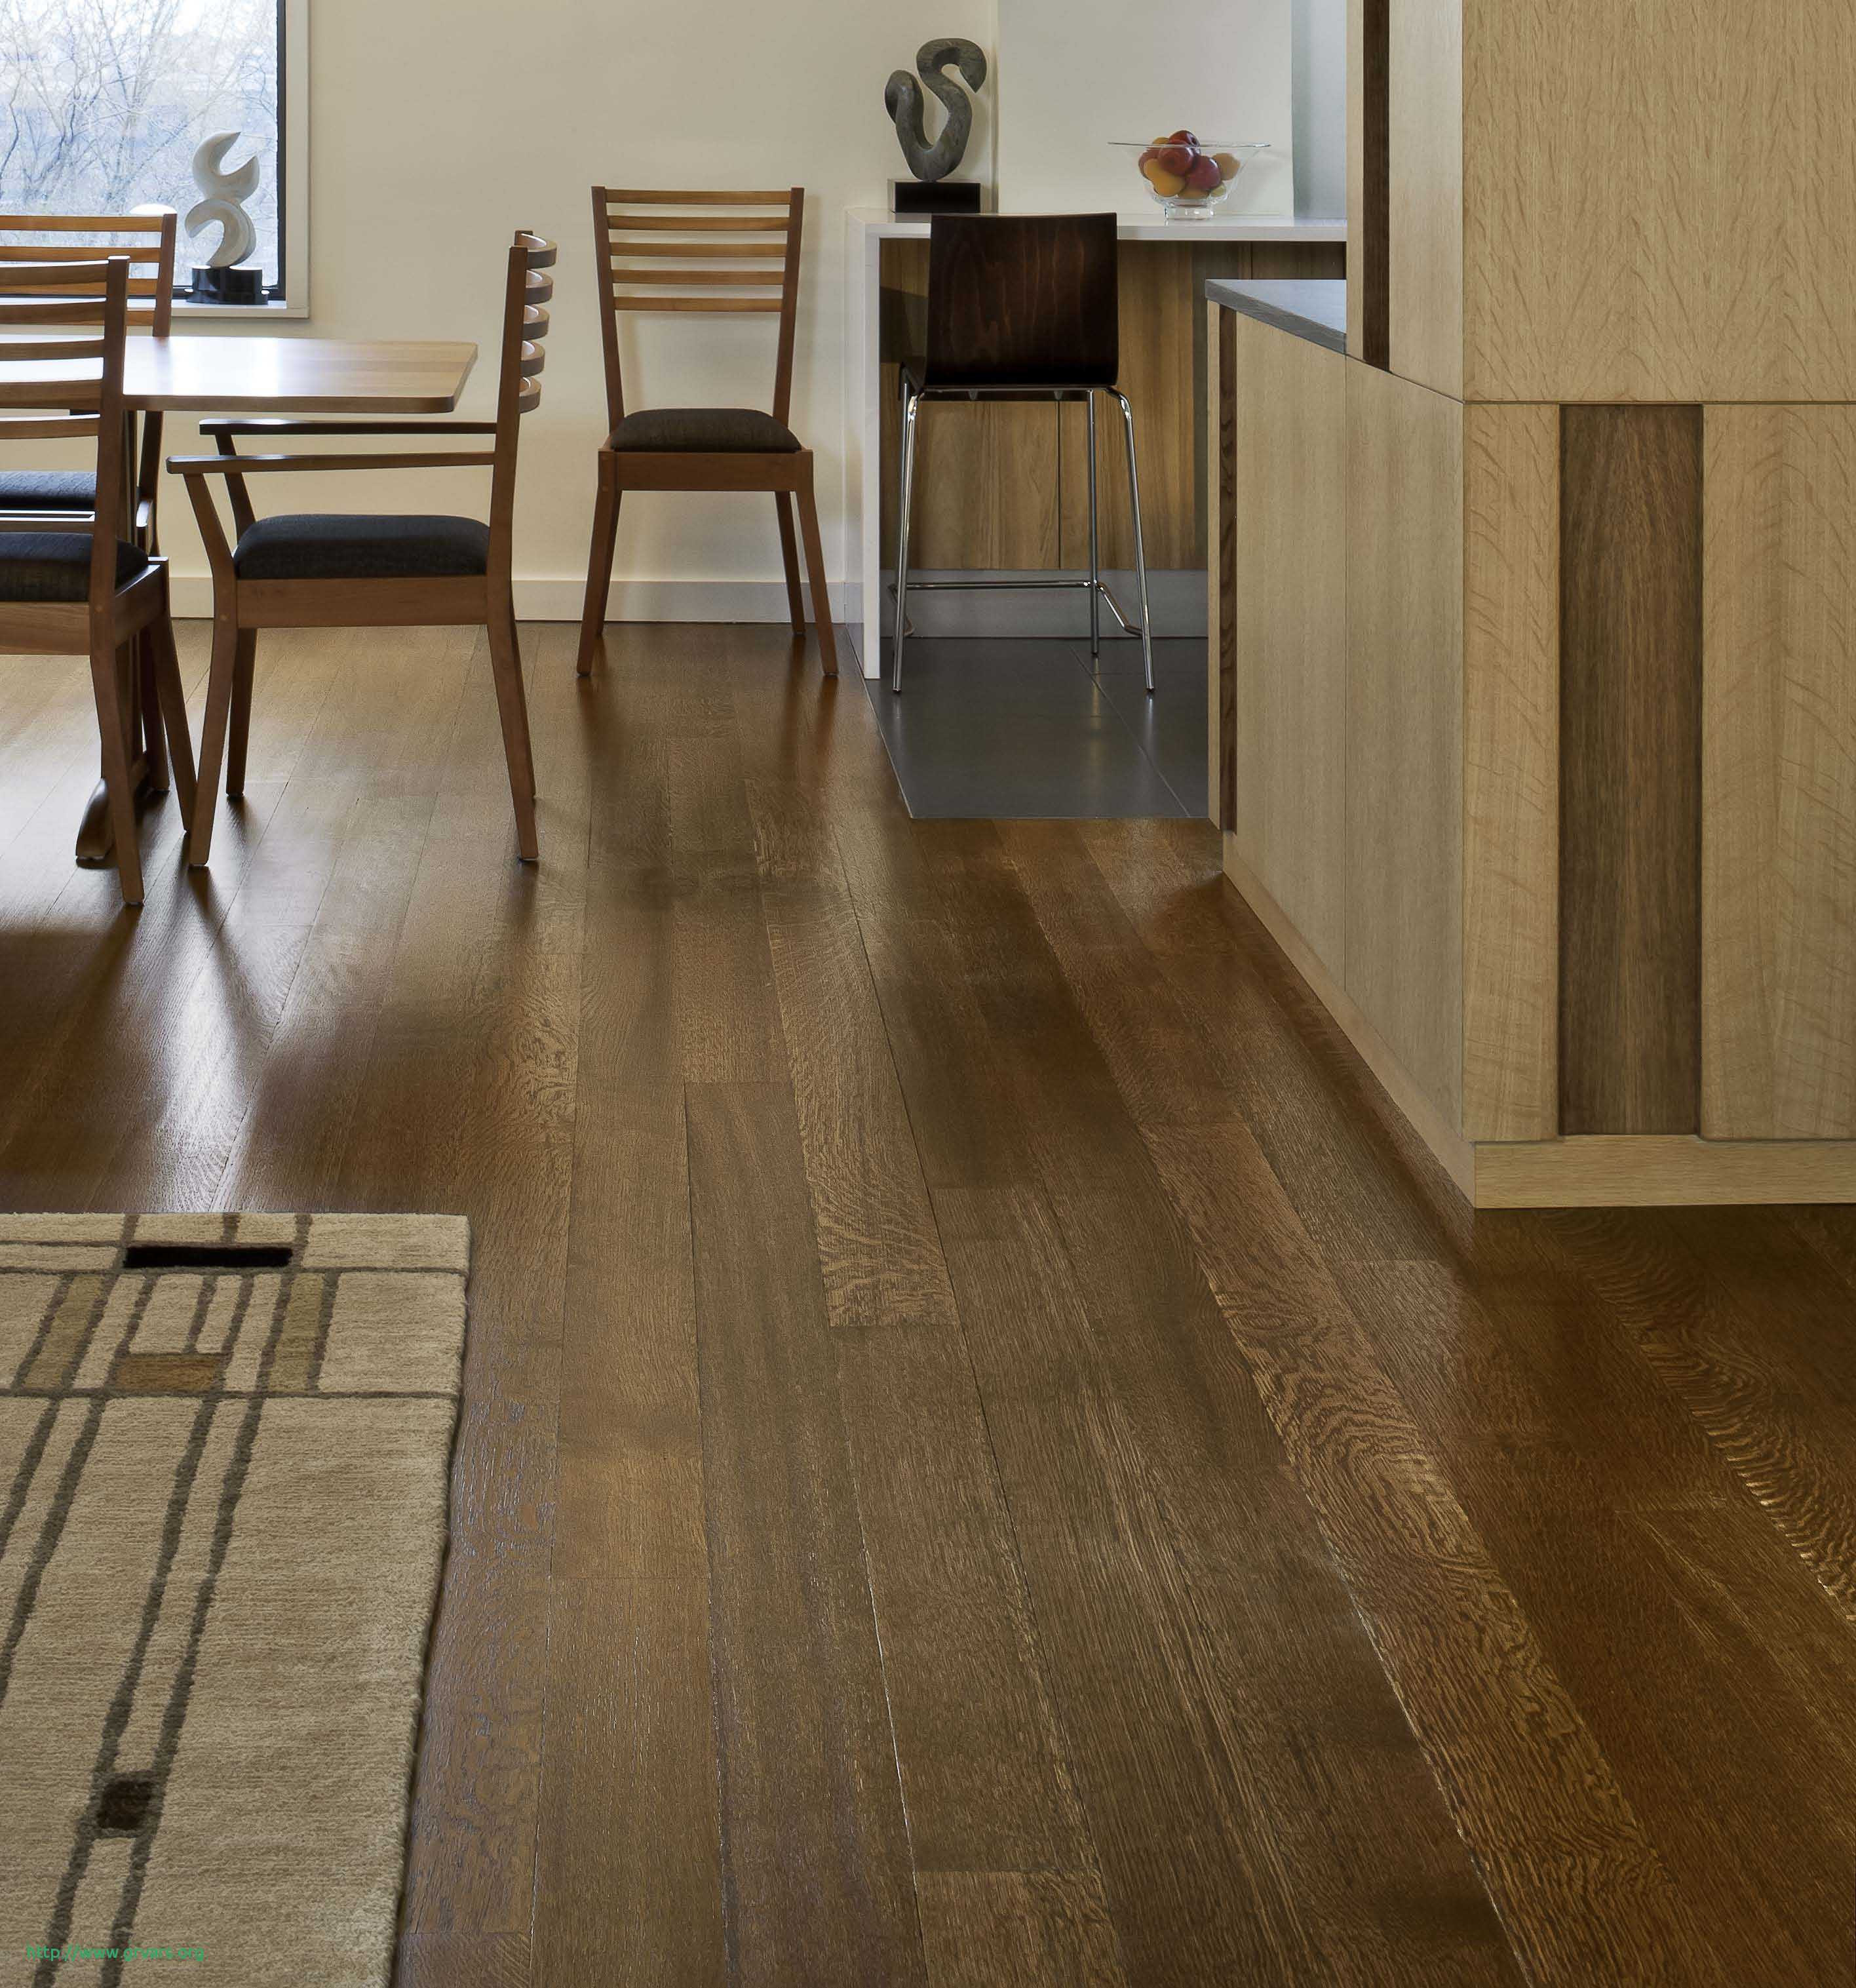 14 Recommended Cleaning Prefinished Hardwood Floors with Vinegar 2021 free download cleaning prefinished hardwood floors with vinegar of how to clean finished wood floors wikizie co throughout cleaning finished hardwood floors nouveau beautiful